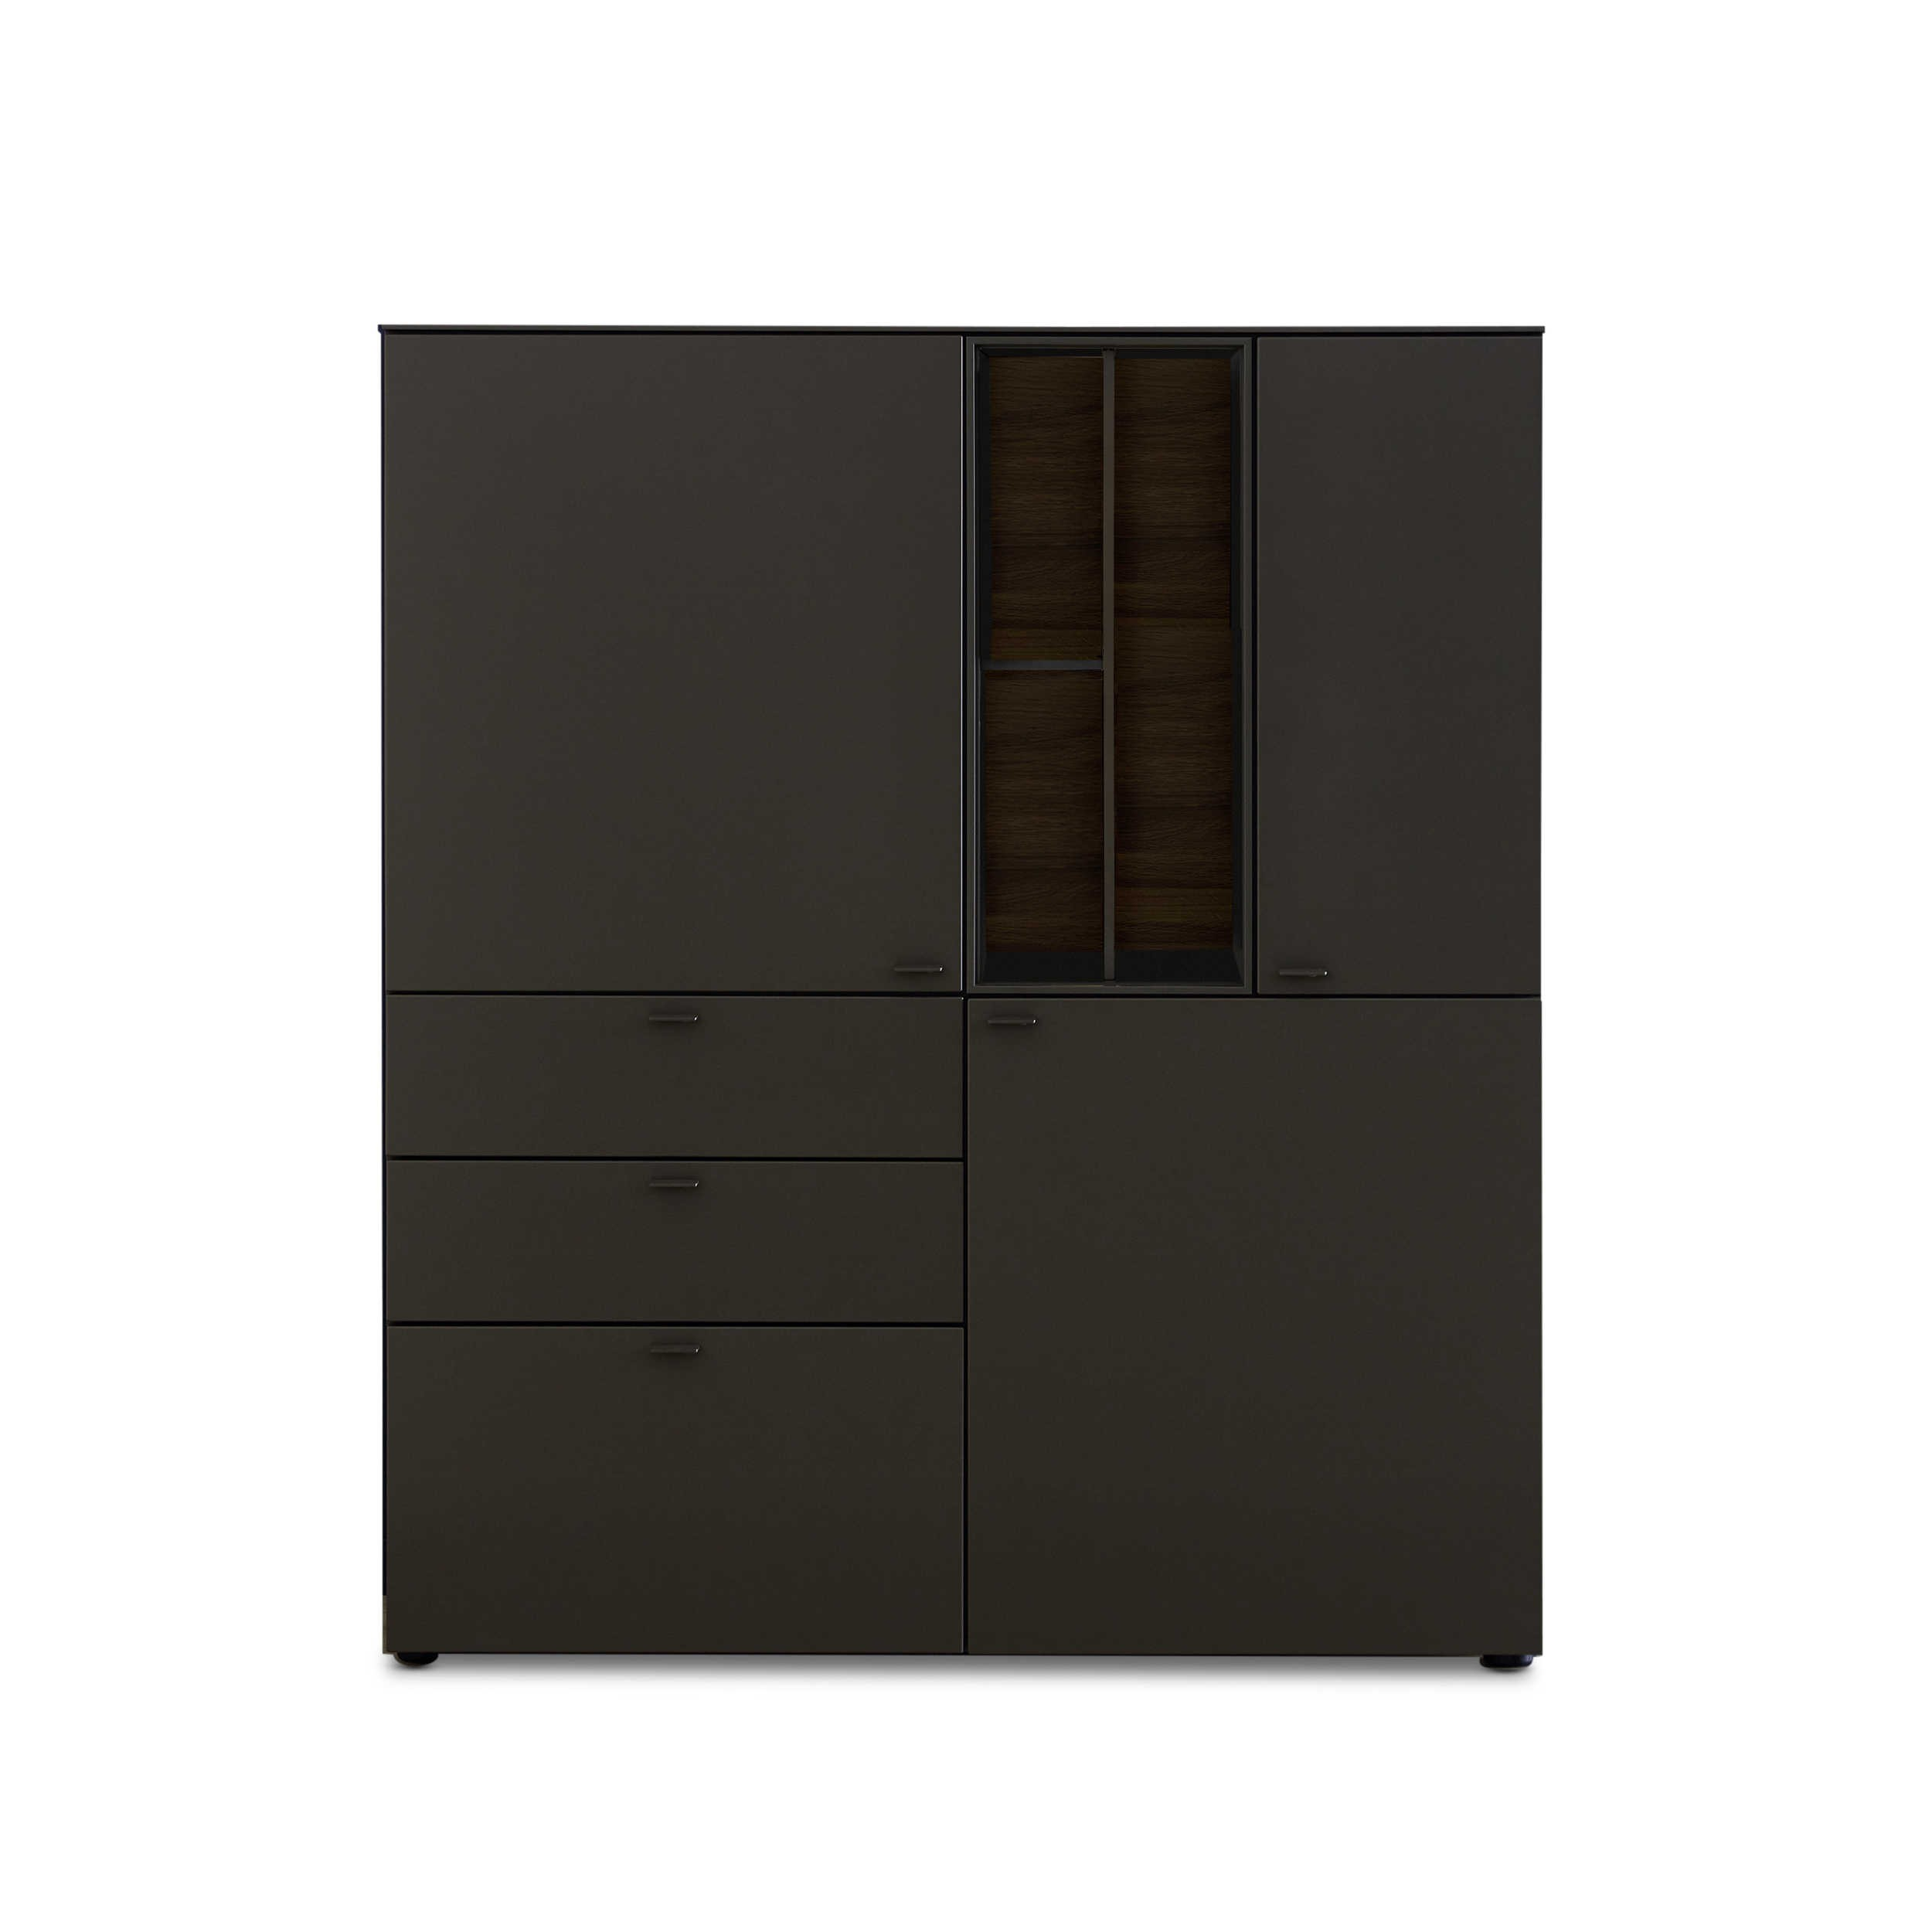 sch ner wohnen highboard geo s652 grau holz online kaufen bei woonio. Black Bedroom Furniture Sets. Home Design Ideas